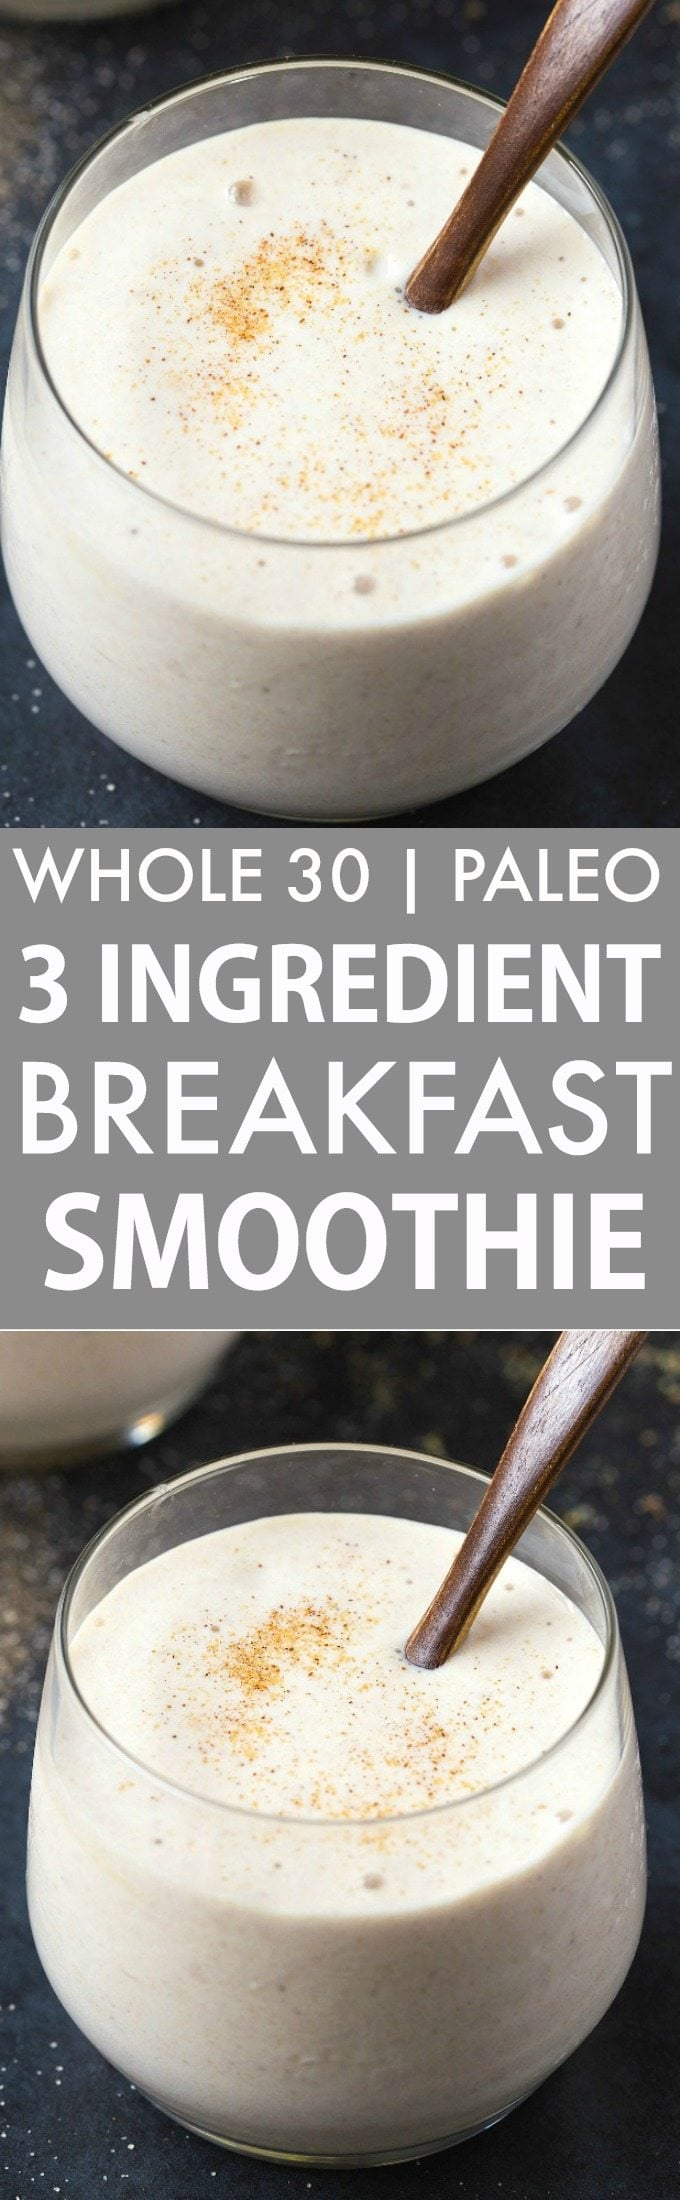 Healthy 3 Ingredient Banana Breakfast Smoothie (Whole 30, Paleo, V, GF)- Whole30 compliant thick and creamy smoothie made with 3 CLEAN ingredients- Filling, satisfying and ready in seconds! {whole 30, paleo, vegan, gluten free, dairy free recipe}- thebigmansworld.com